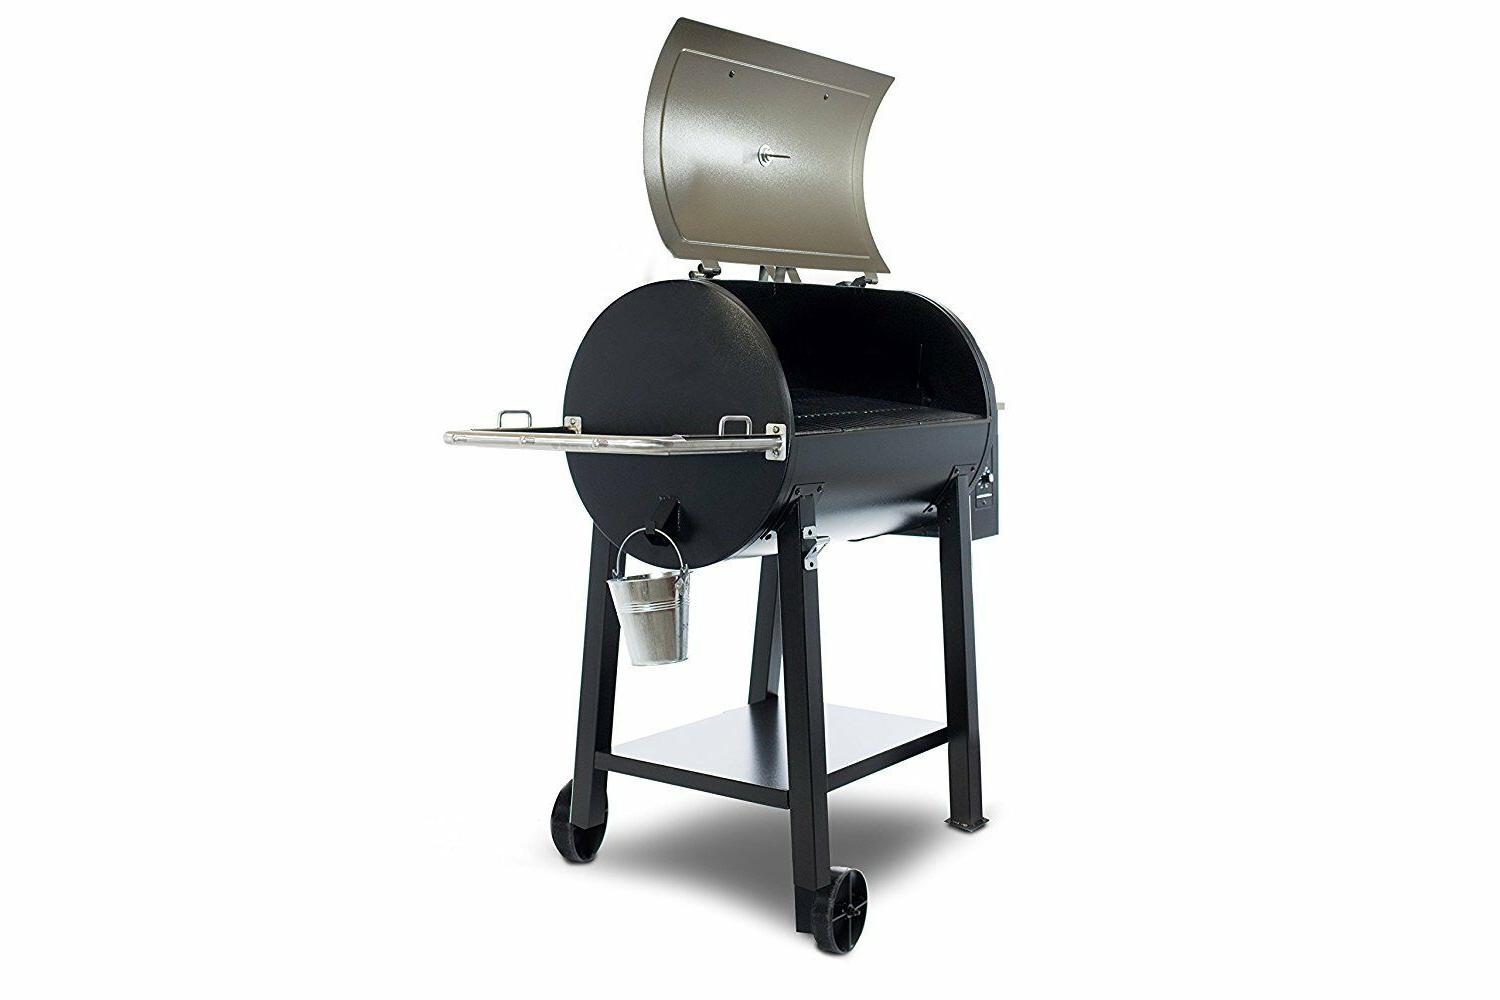 NEW DELUXE 440D WOOD GRILL COPPER HEAVY DUTY